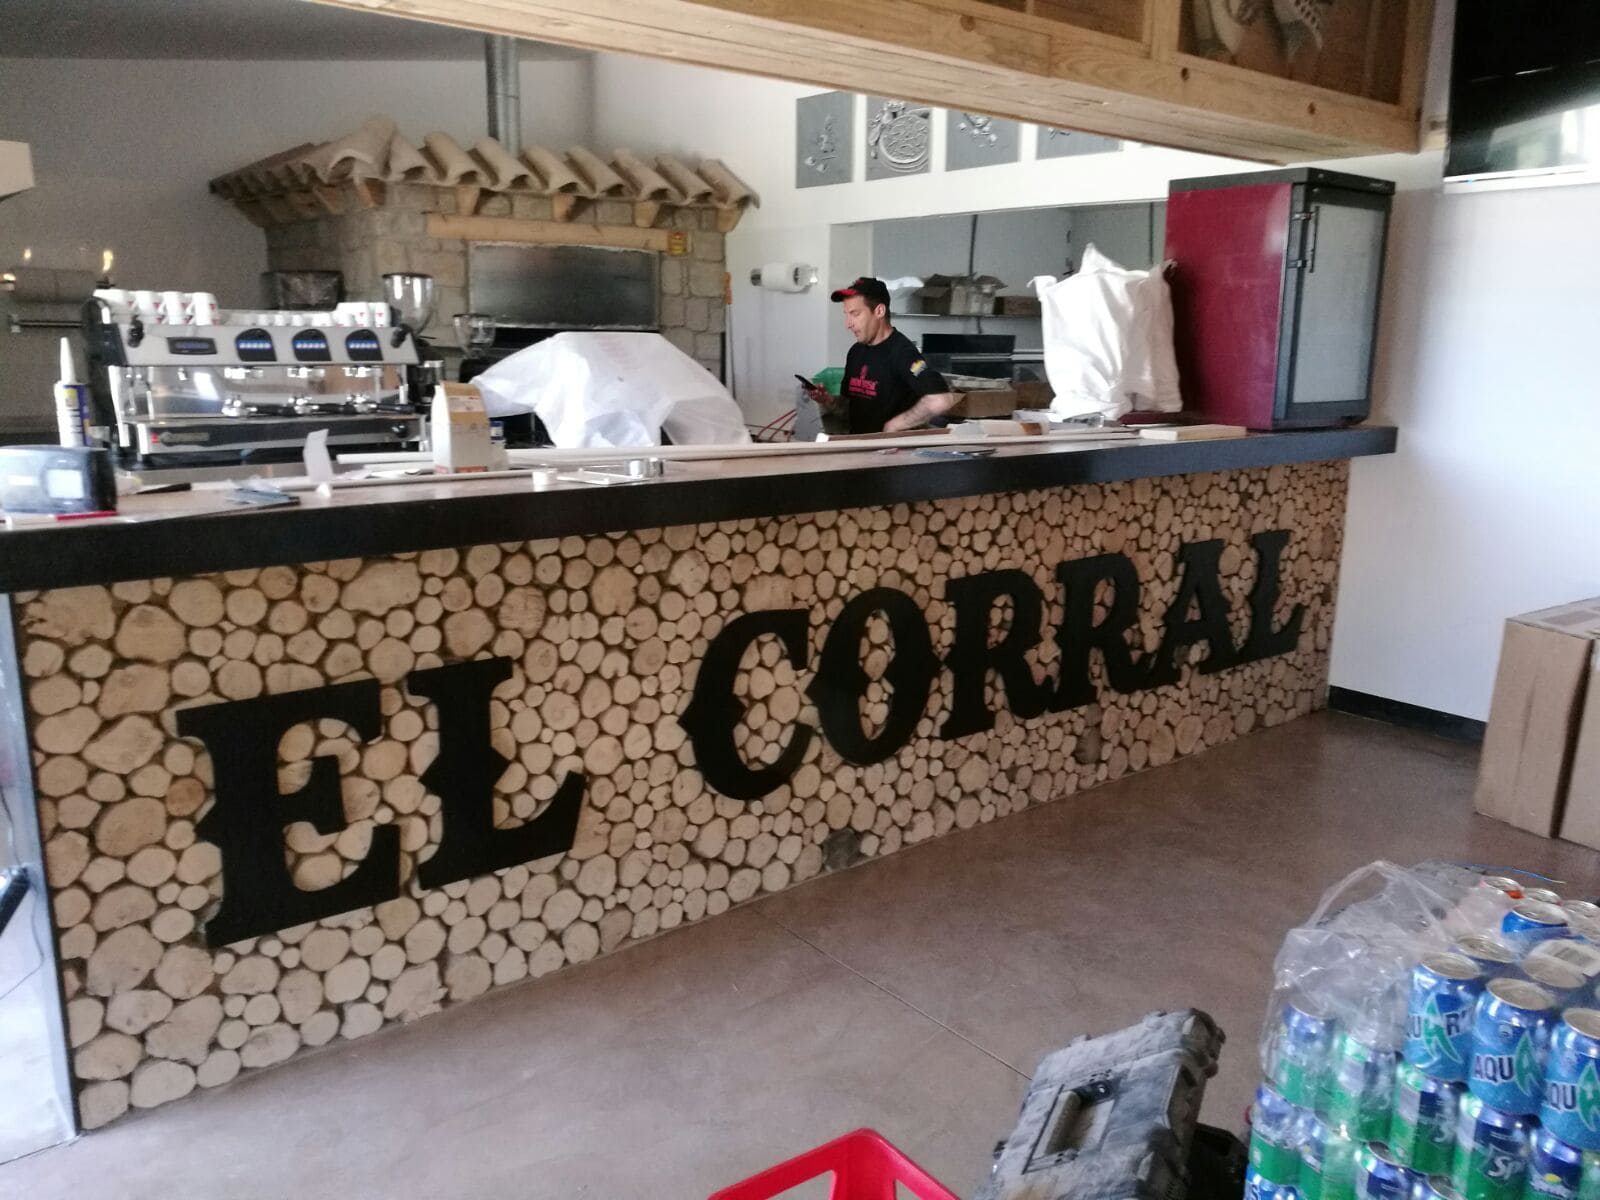 ELCORRAL2 - ELCORRAL2